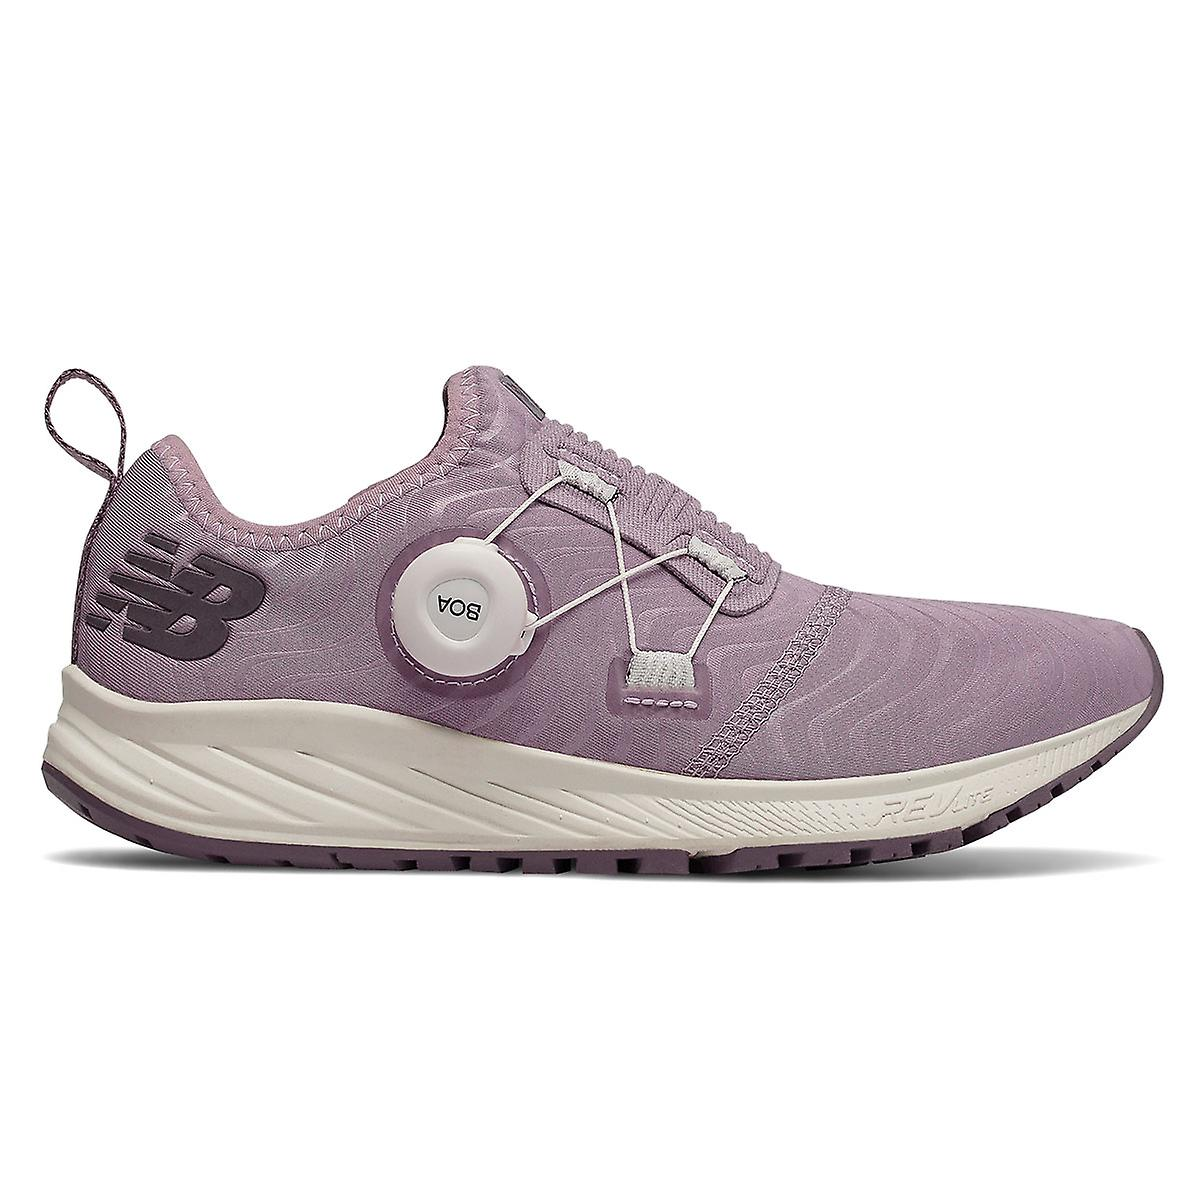 New Balance femmes 2019 Fuelcore Sonic v2 Running chaussures